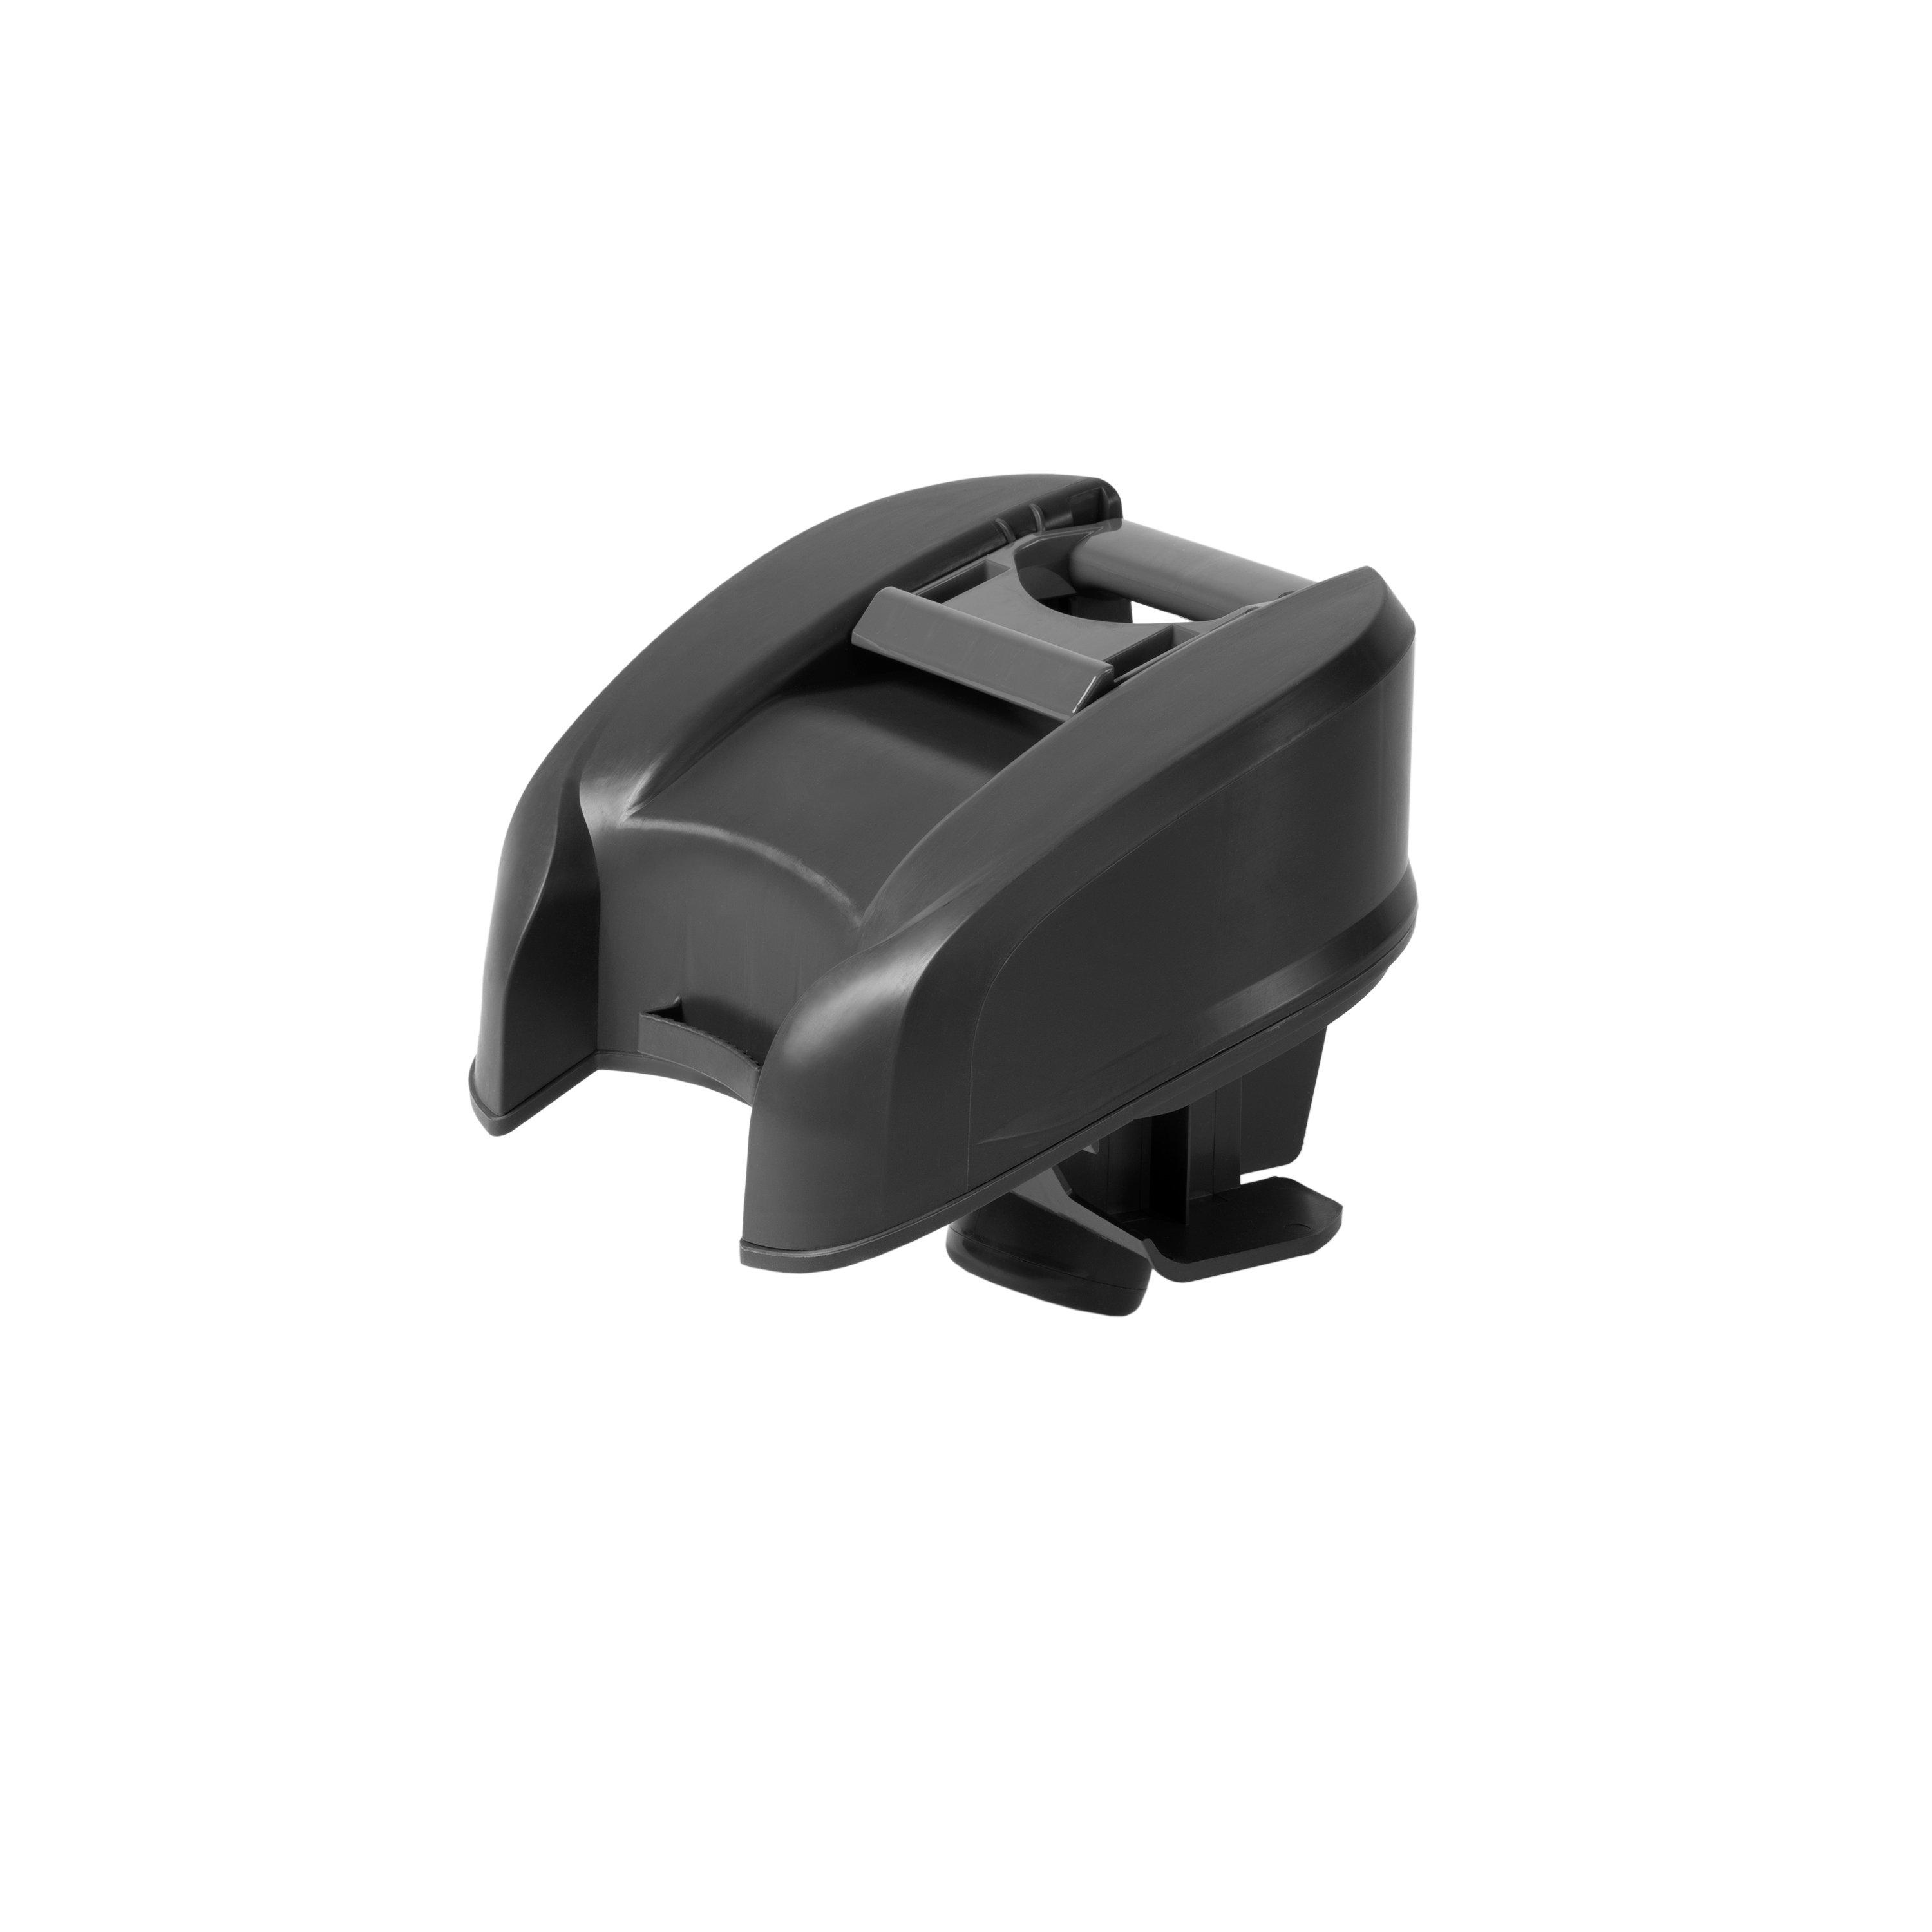 Dirty Water Tank Lid for Dual Power Max Pet2